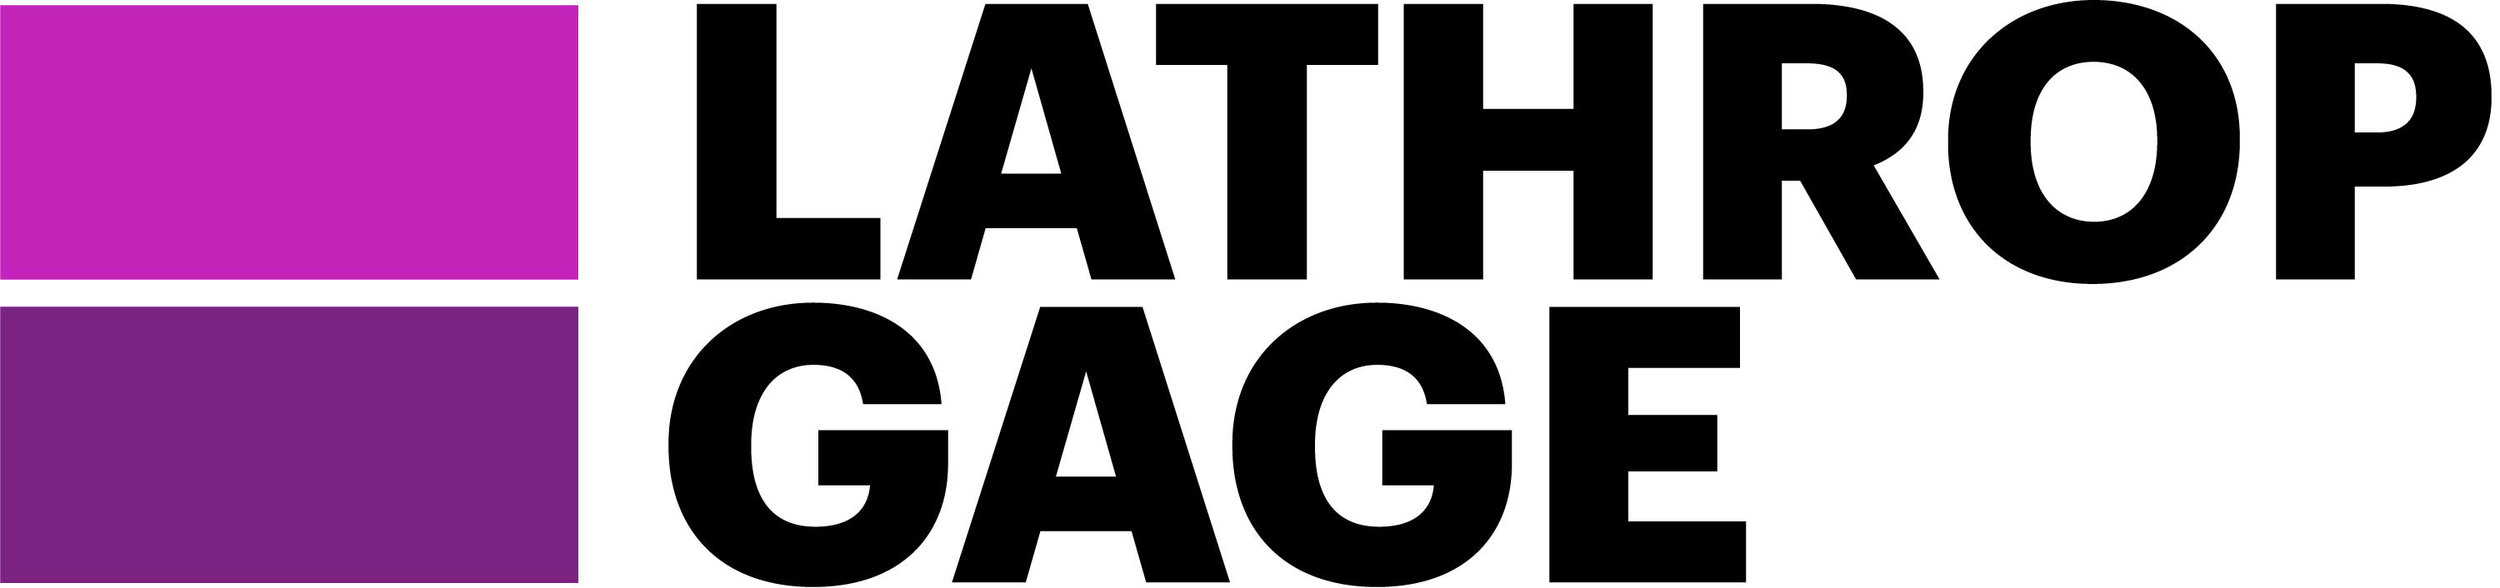 lathrop-gage-logo-primary-300dpi.jpg